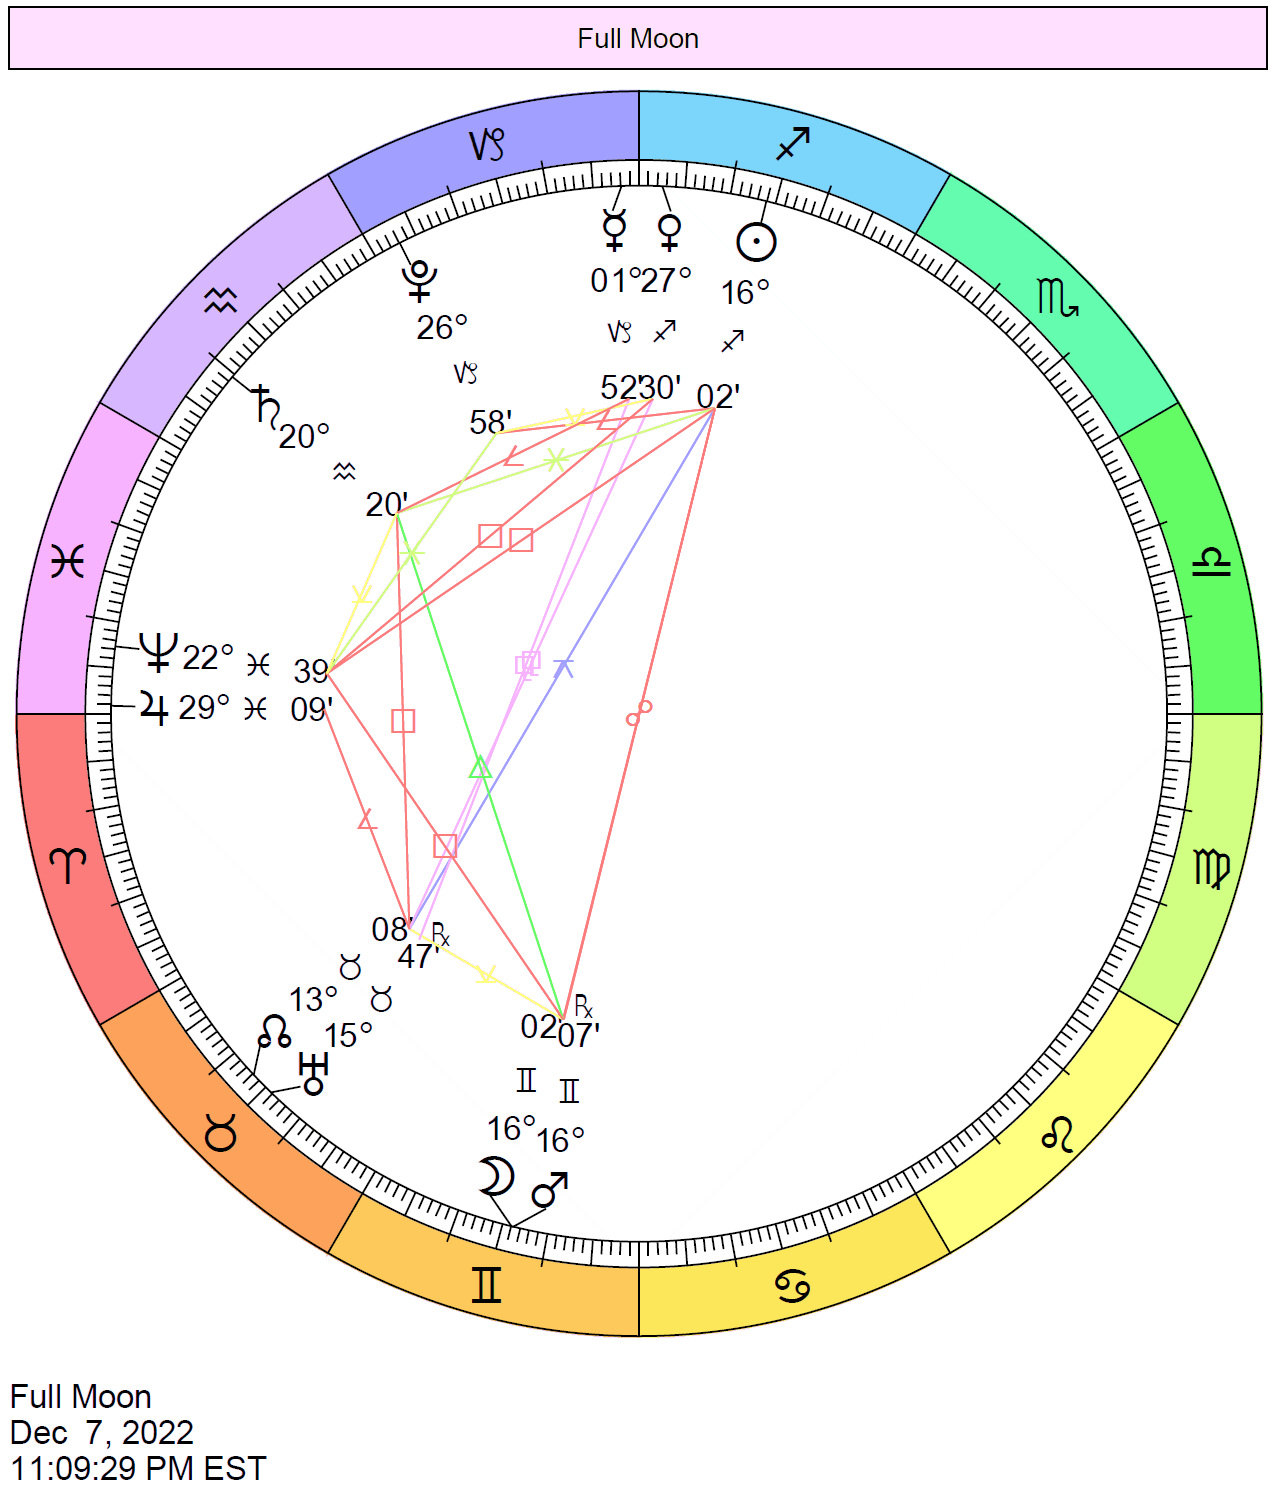 chart wheel with planet positions when the Full Moon occurs in December 2022